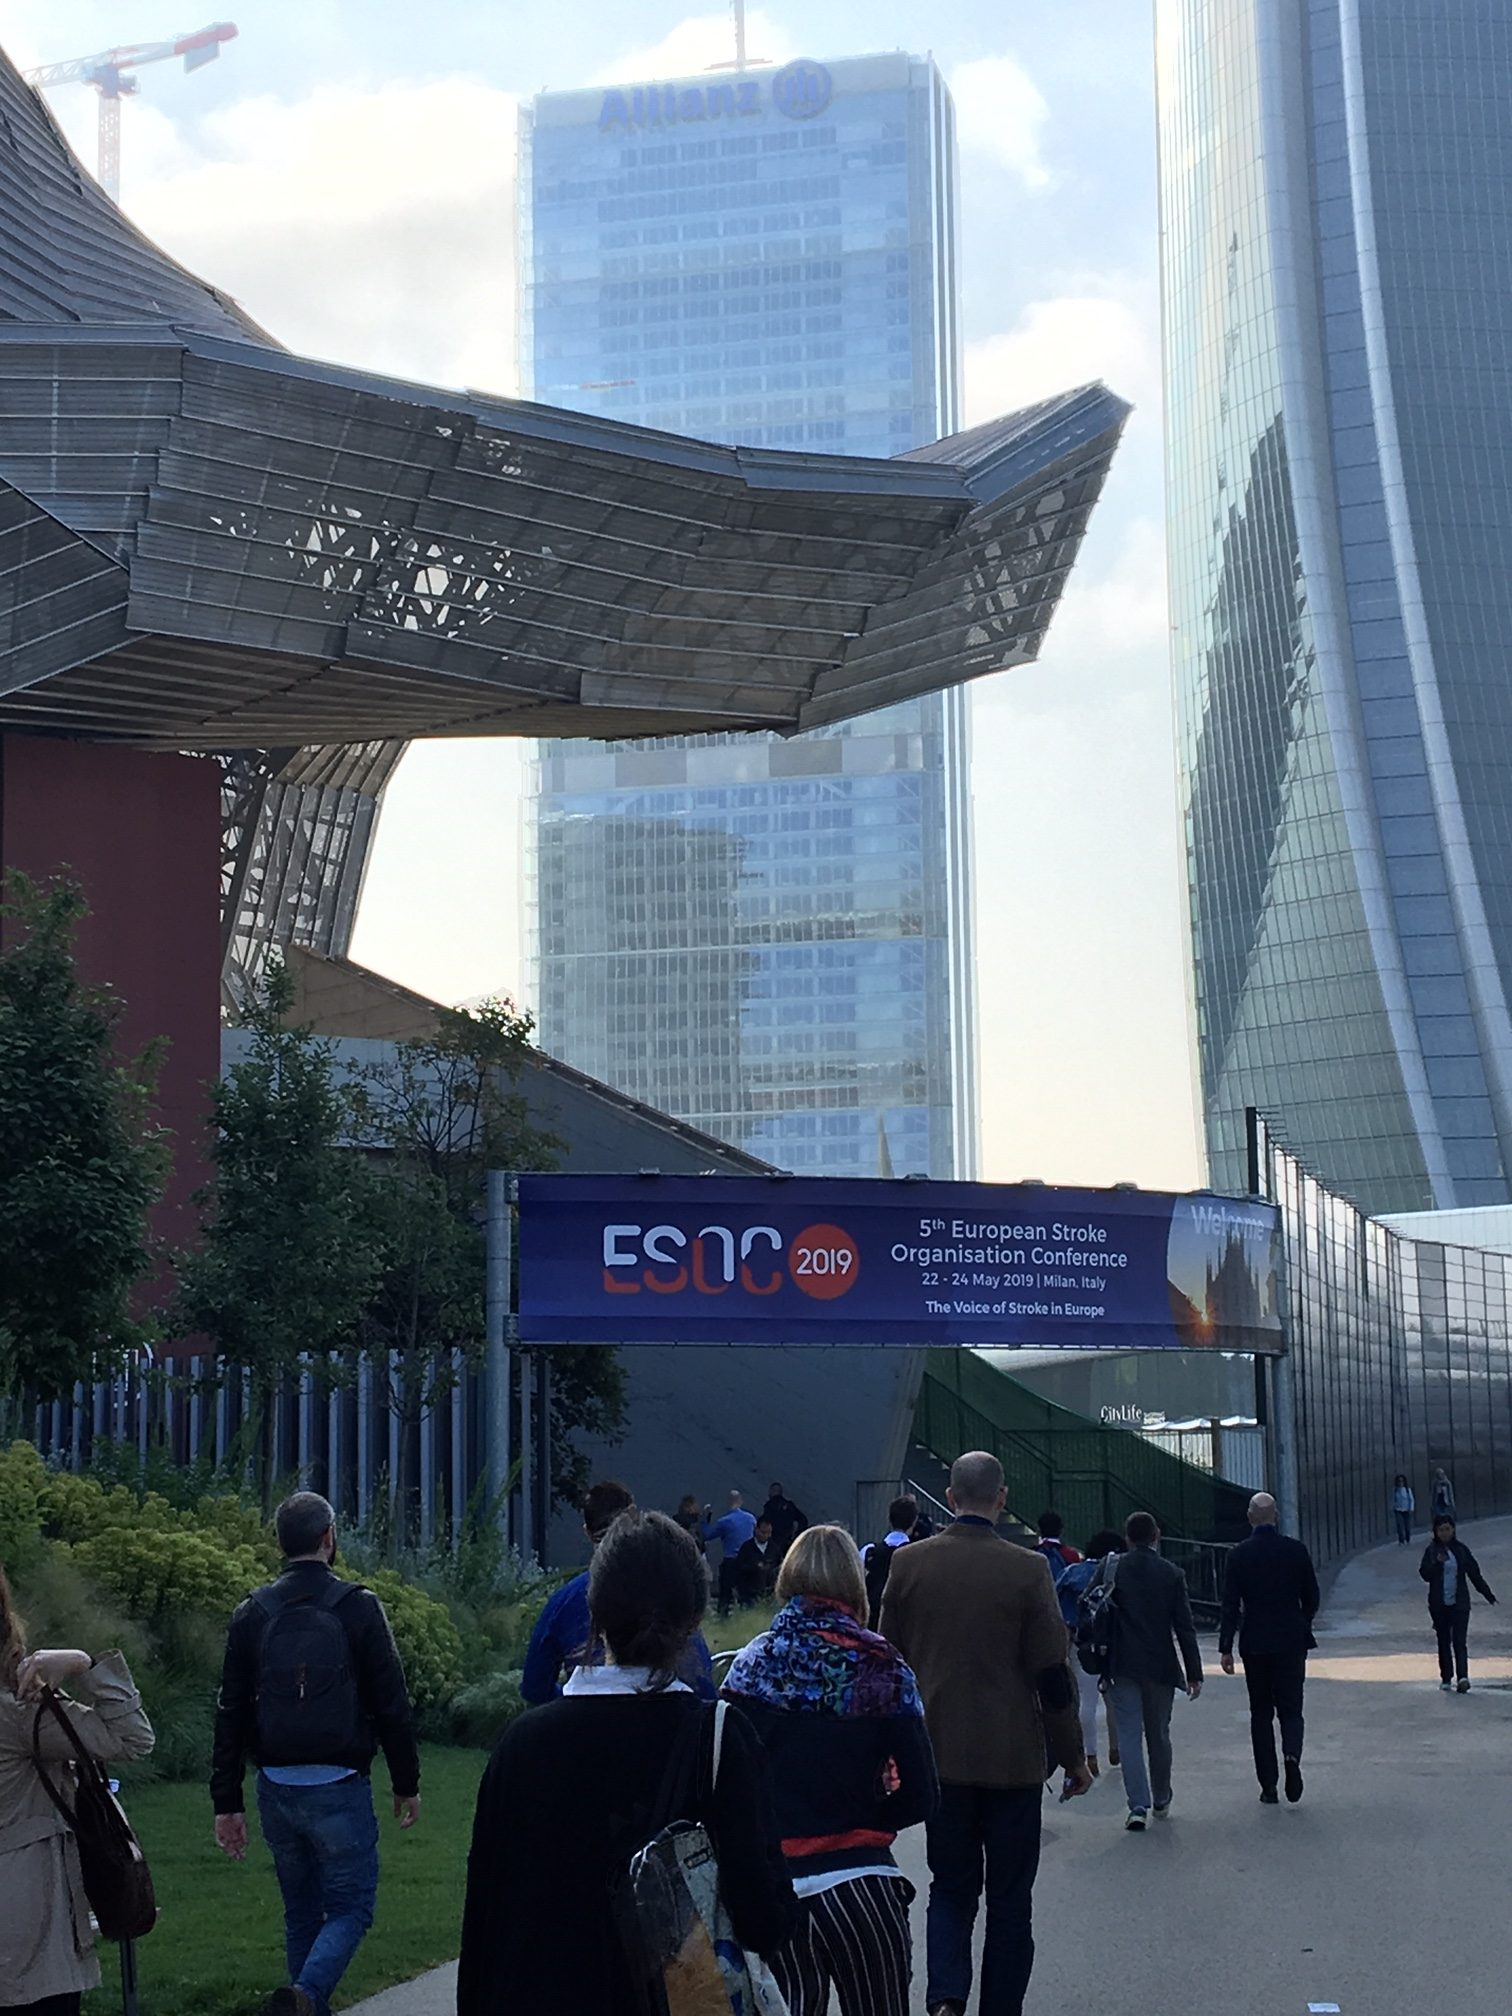 outside conference centre looking at ESOC sign